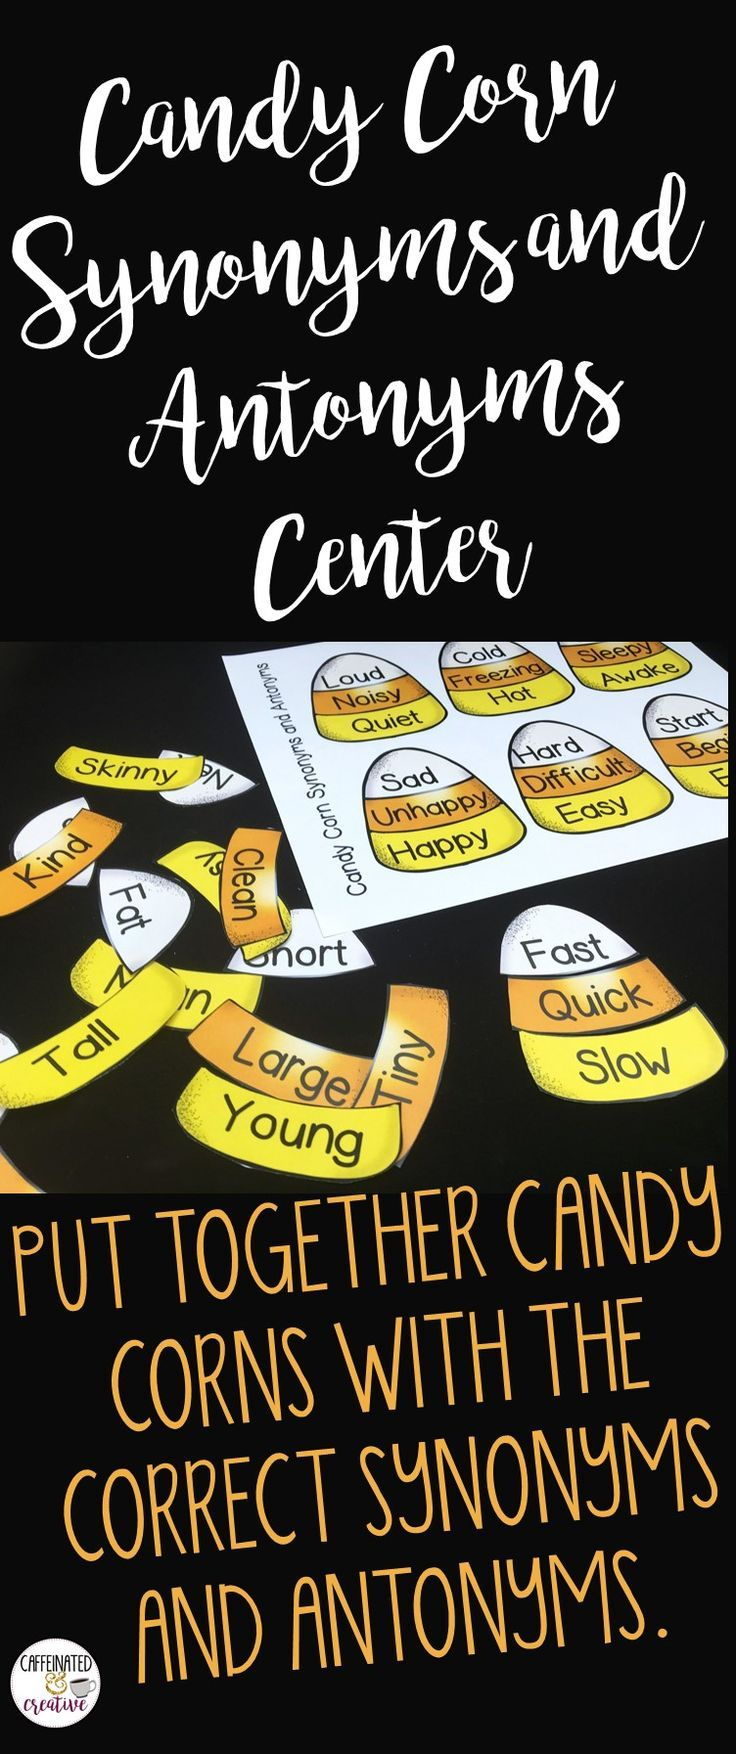 This synonyms and antonyms center uses candy corn for a fun Halloween themed center for students to practice their synonyms and antonyms. This comes with 2 pages of candy corns.